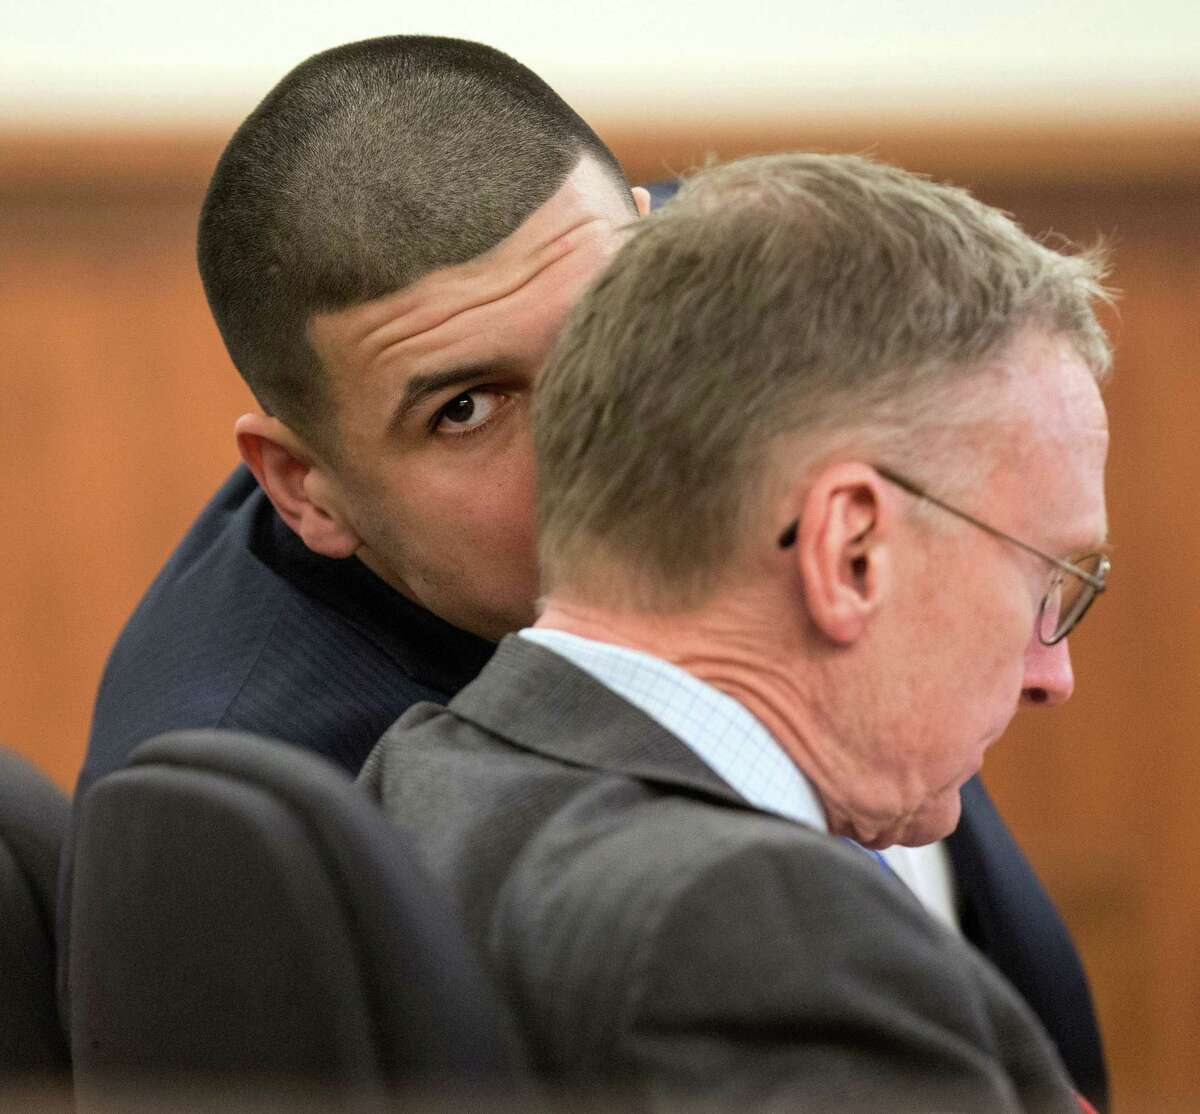 Former New England Patriot Aaron Hernandez, left, speaks with his attorney Charles Rankin during his trial Monday at Bristol County Superior Court in Fall River, Mass.